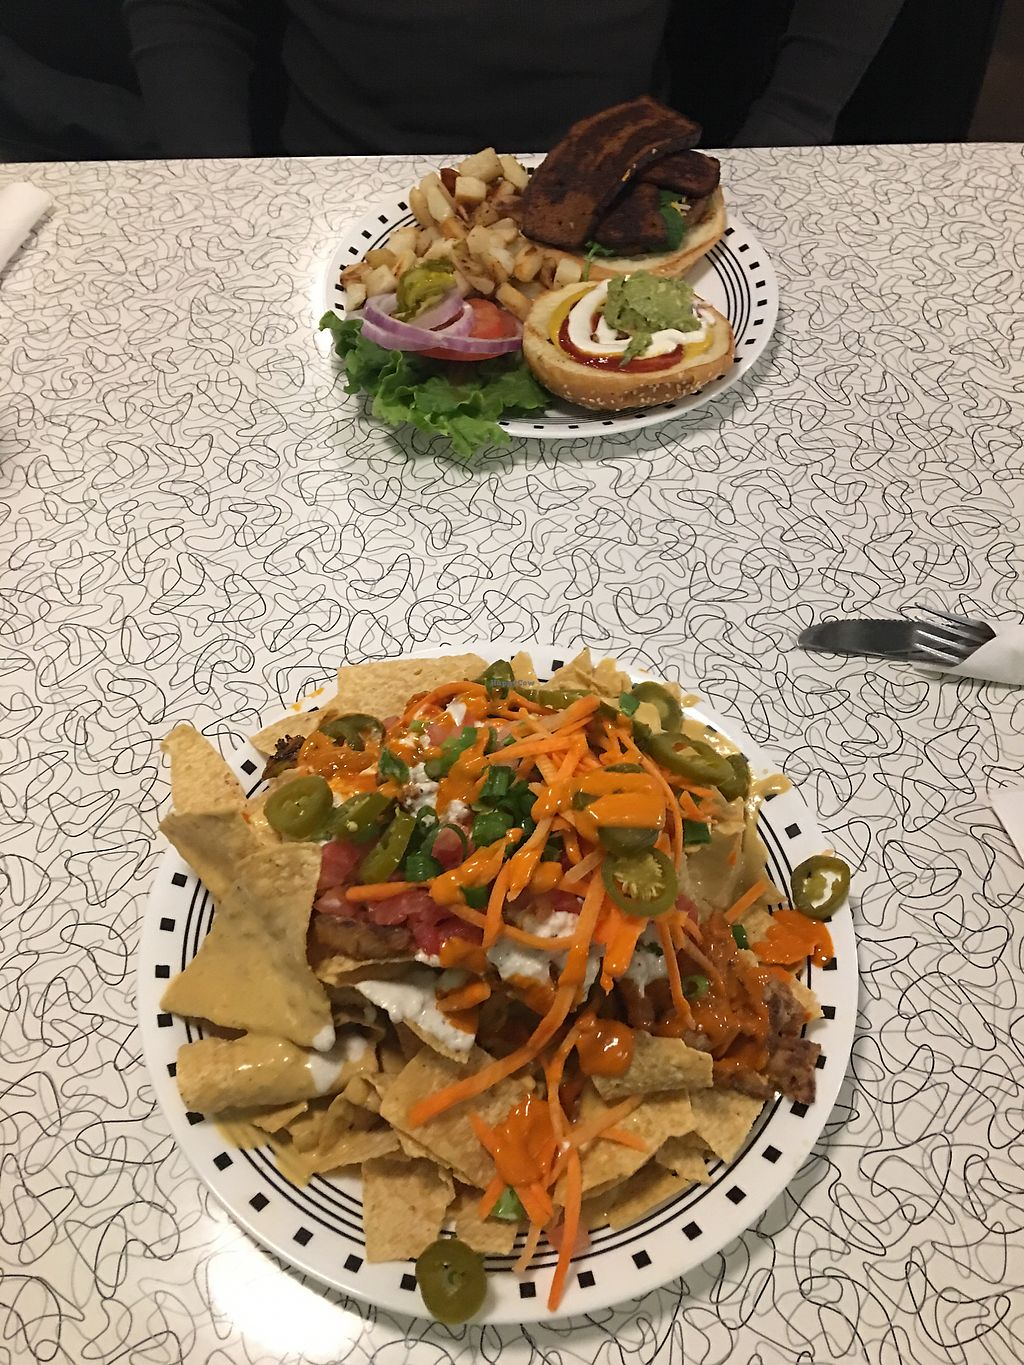 """Photo of Spiral Diner and Bakery  by <a href=""""/members/profile/EmilieP%C3%A9loquin"""">EmiliePéloquin</a> <br/>Buffalo spicy nachos and Spiral Burger <br/> February 18, 2018  - <a href='/contact/abuse/image/13232/360656'>Report</a>"""